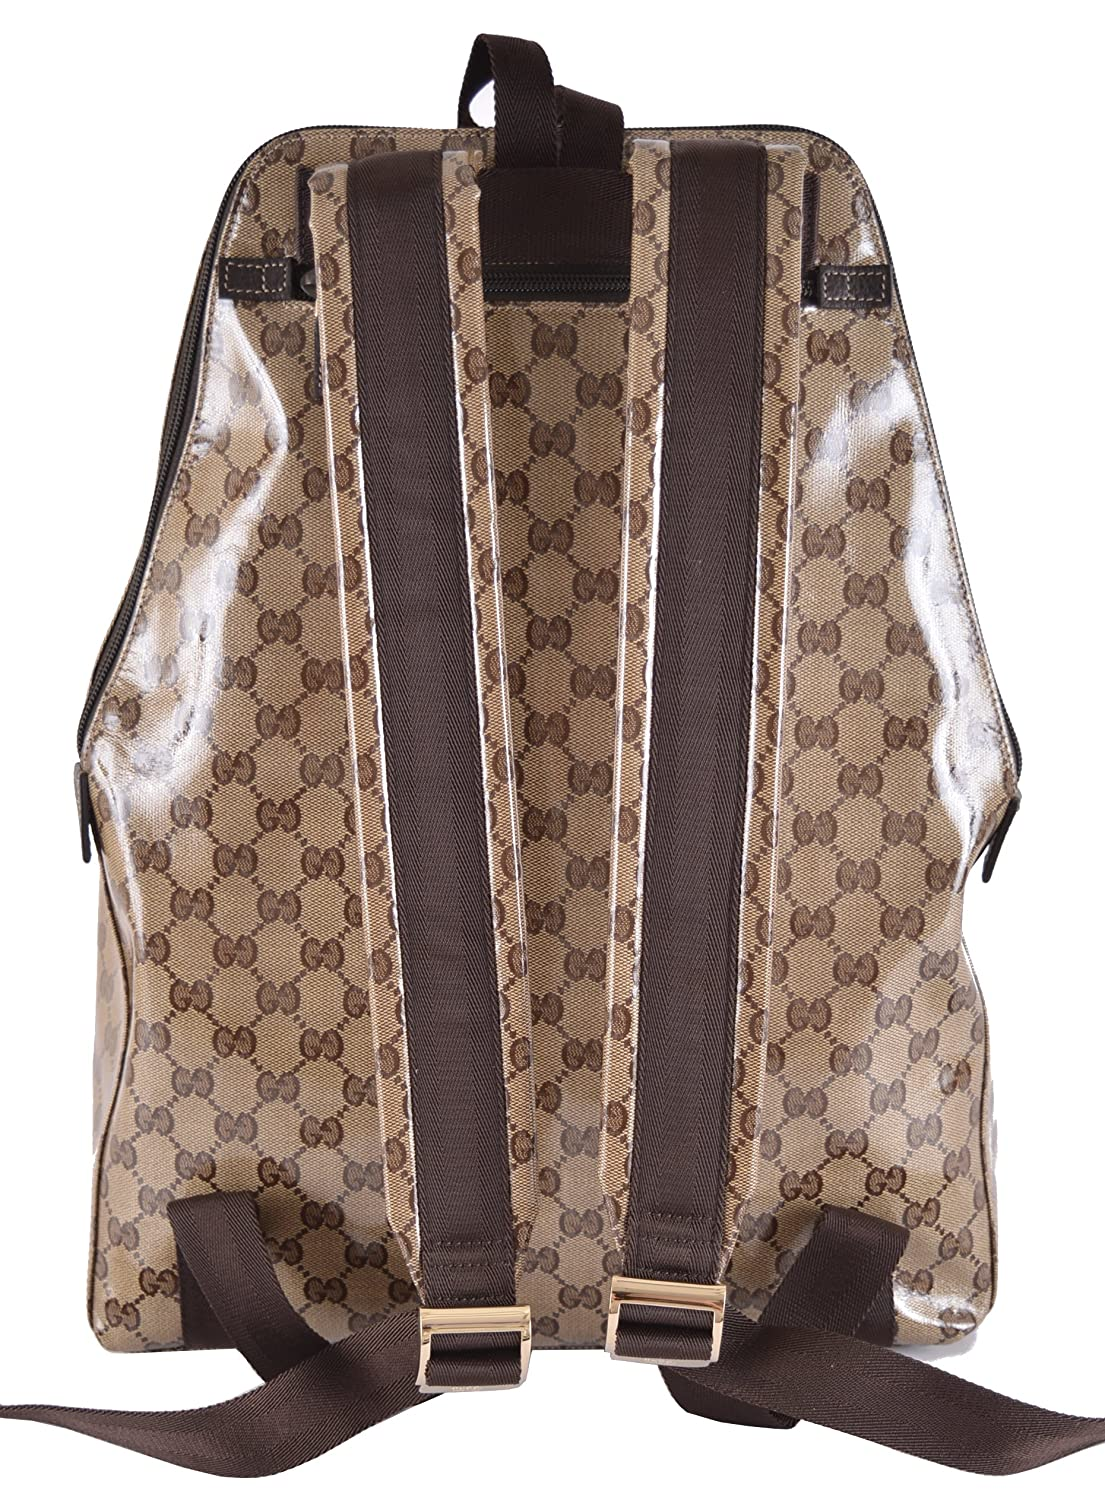 Gucci Men s Crystal Canvas XL GG Guccissima Backpack Bag  Amazon.co.uk   Clothing 849b2f09281d4